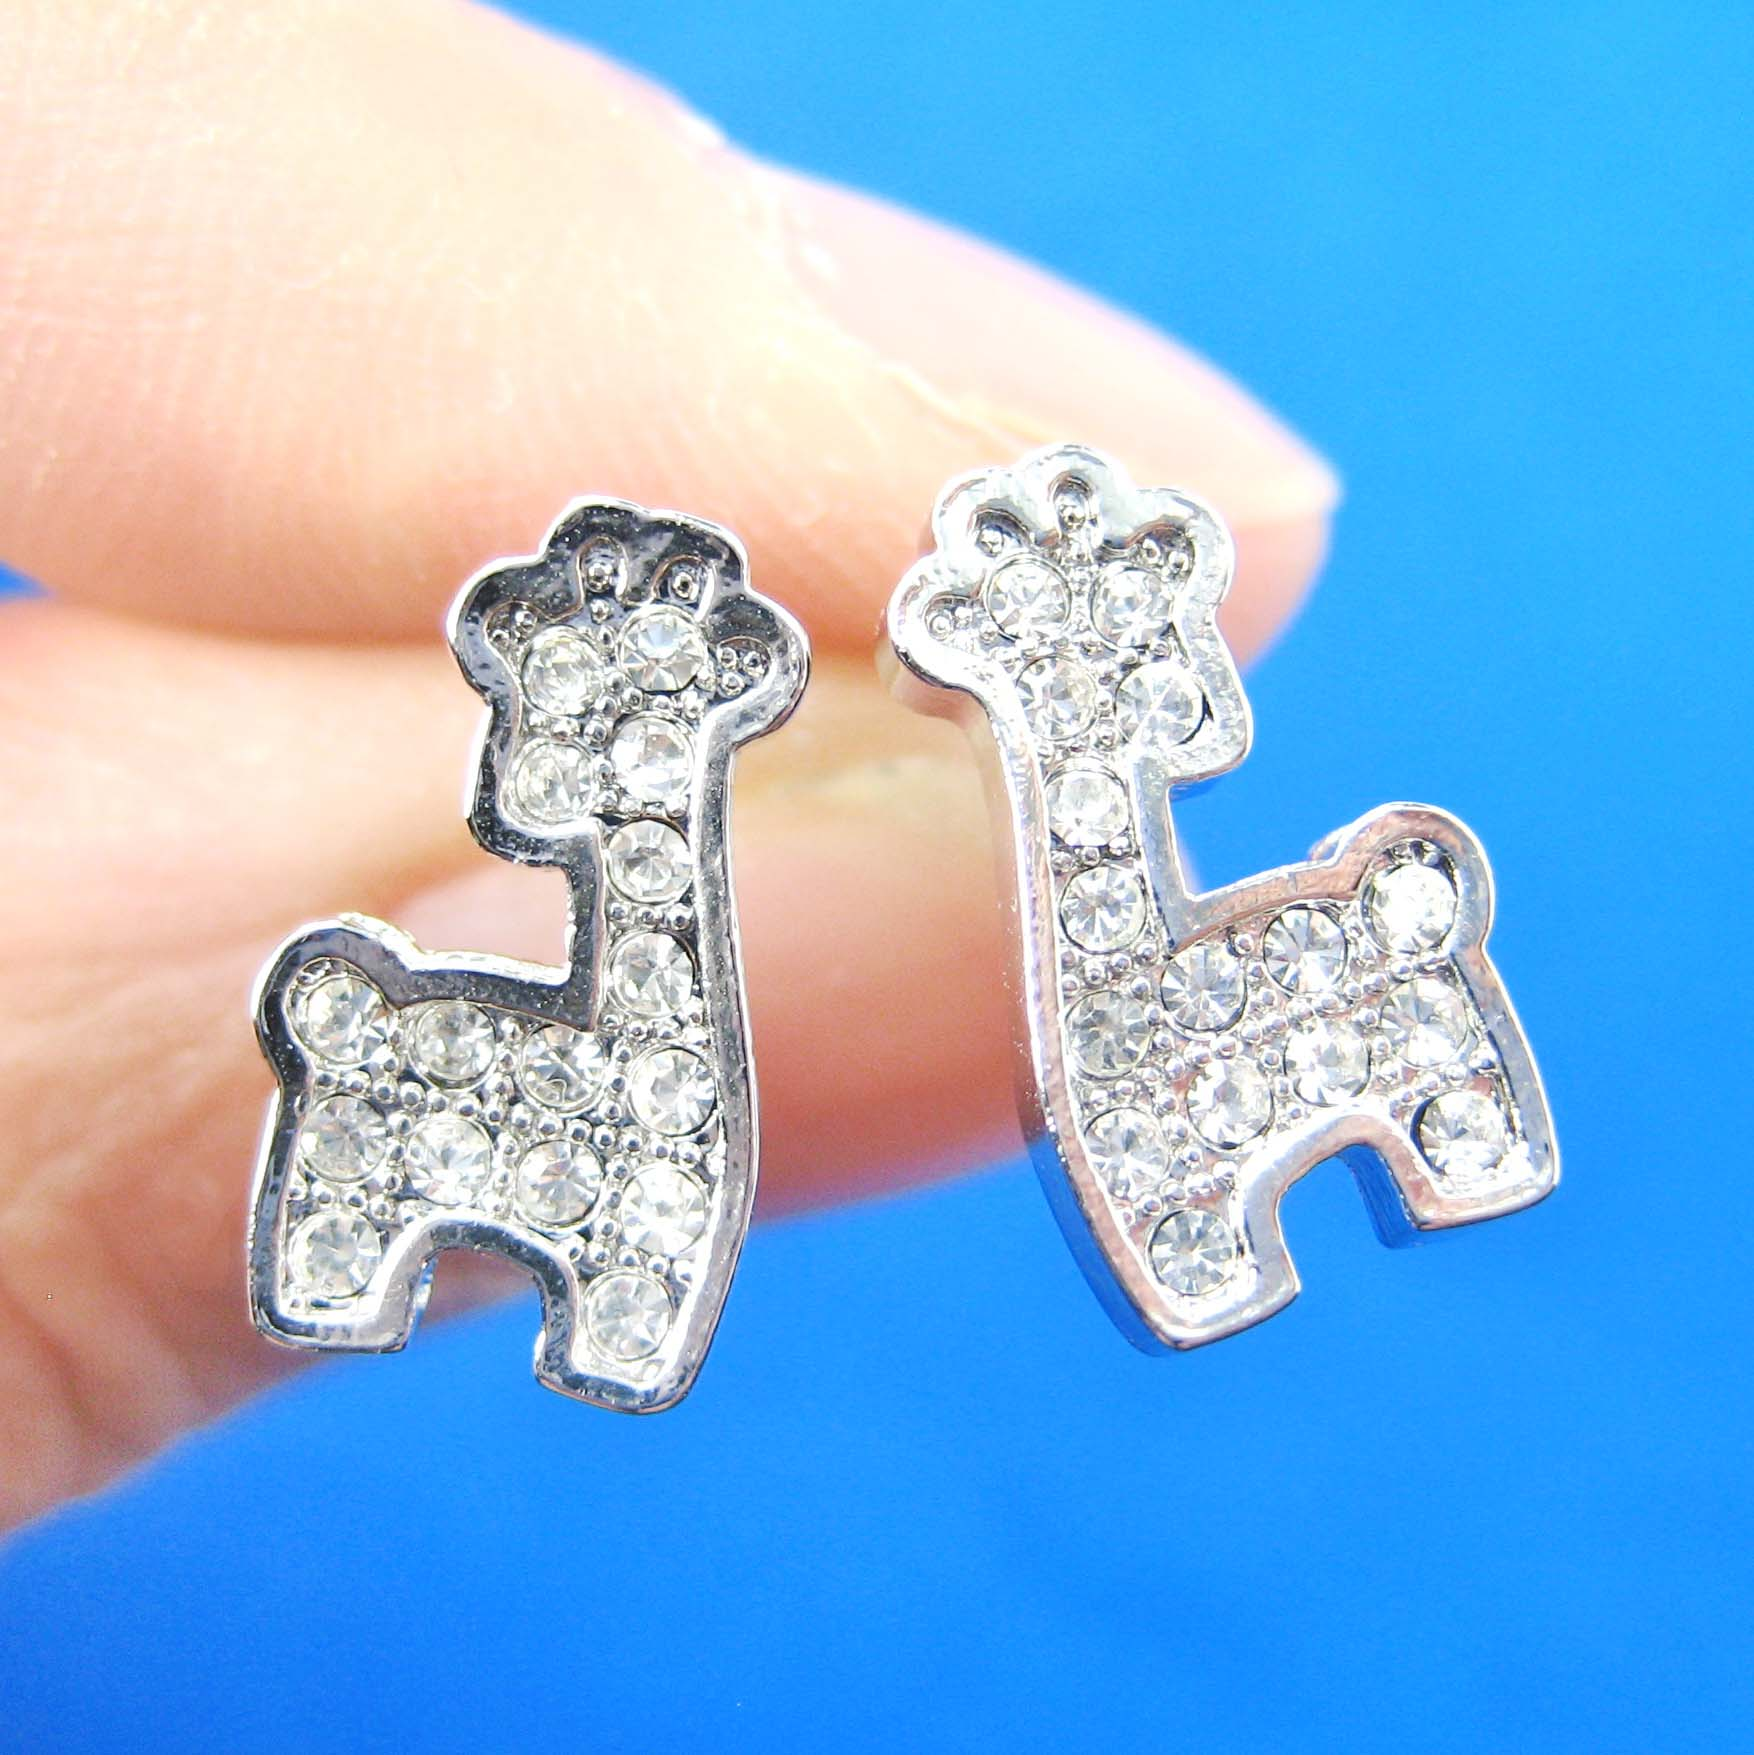 small giraffe shaped animal stud earrings in silver with